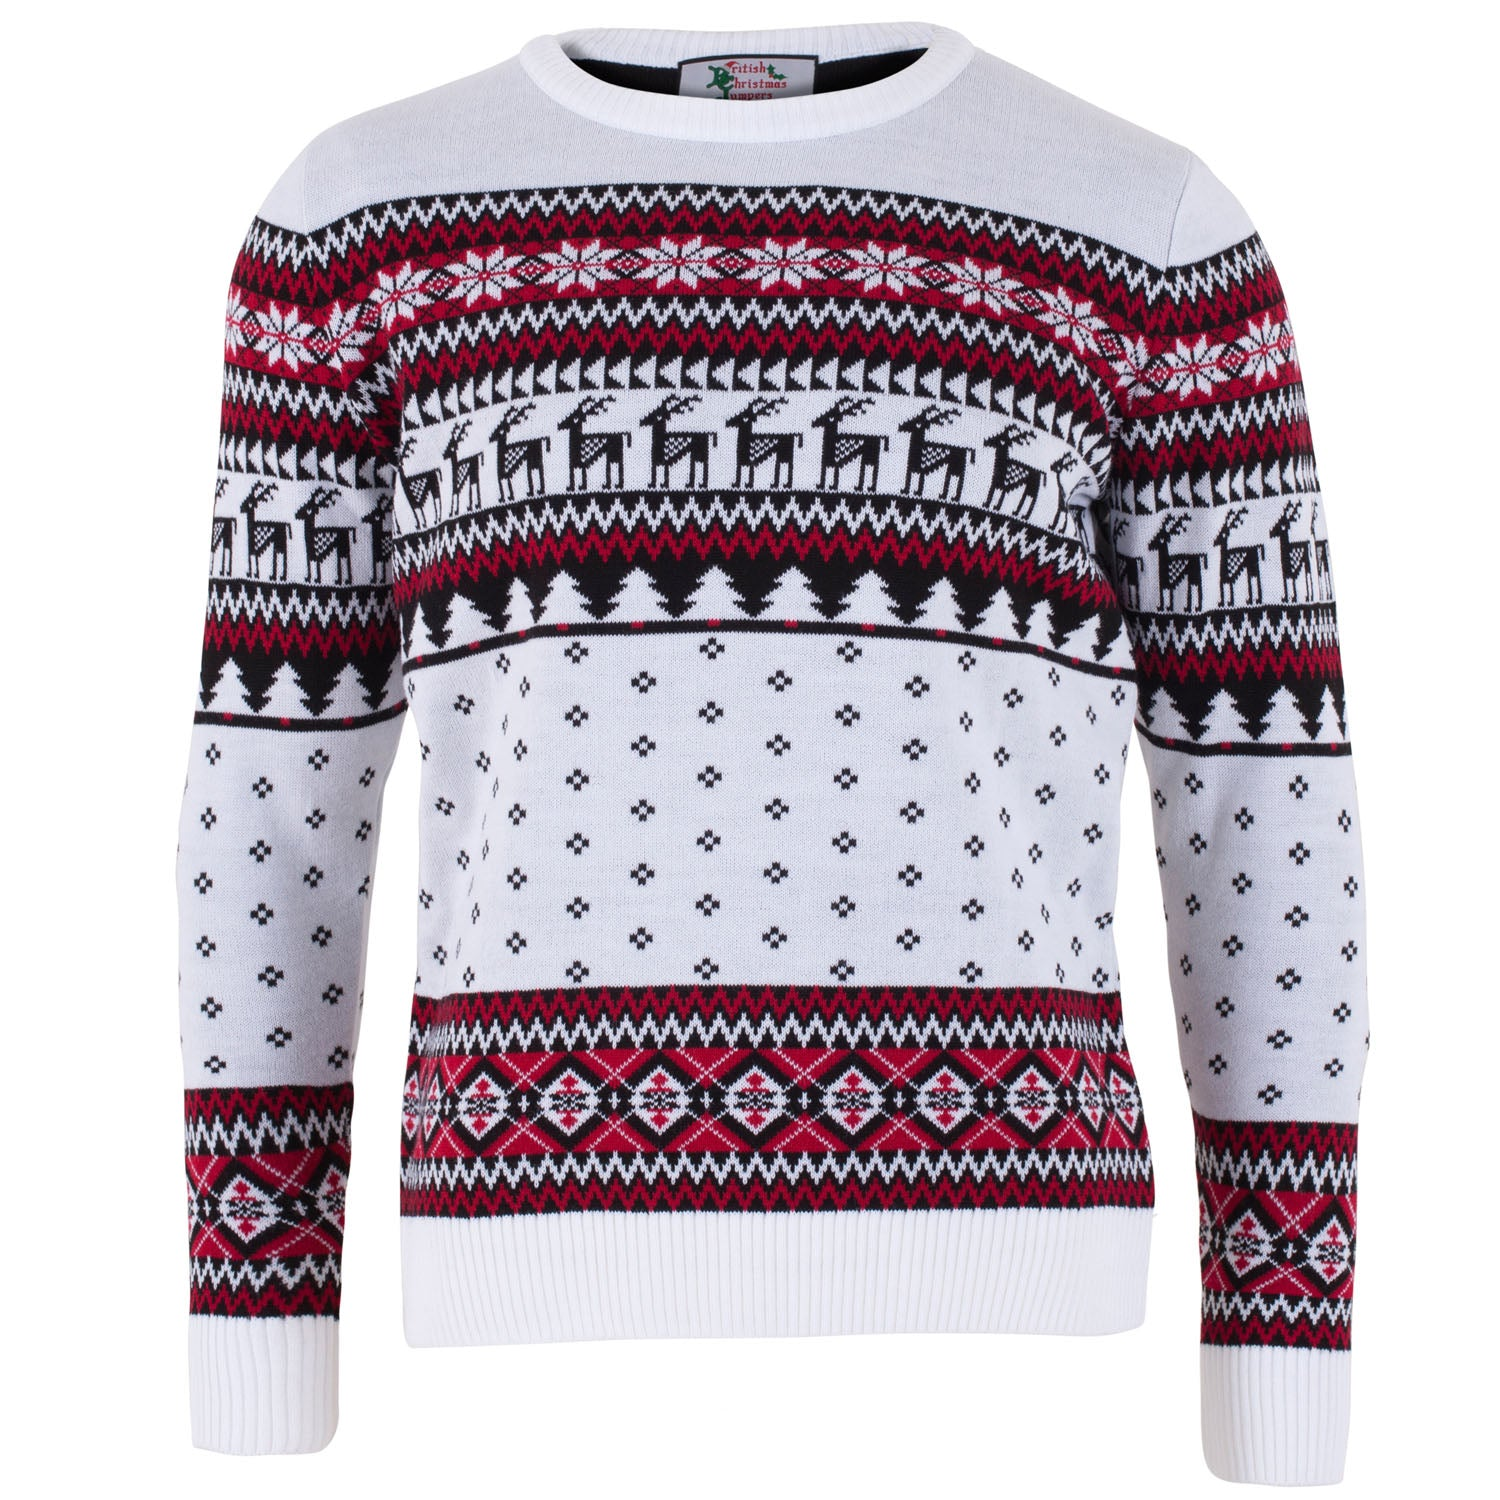 The Home of Festive Knitwear | Mens and Womens Holiday Sweaters